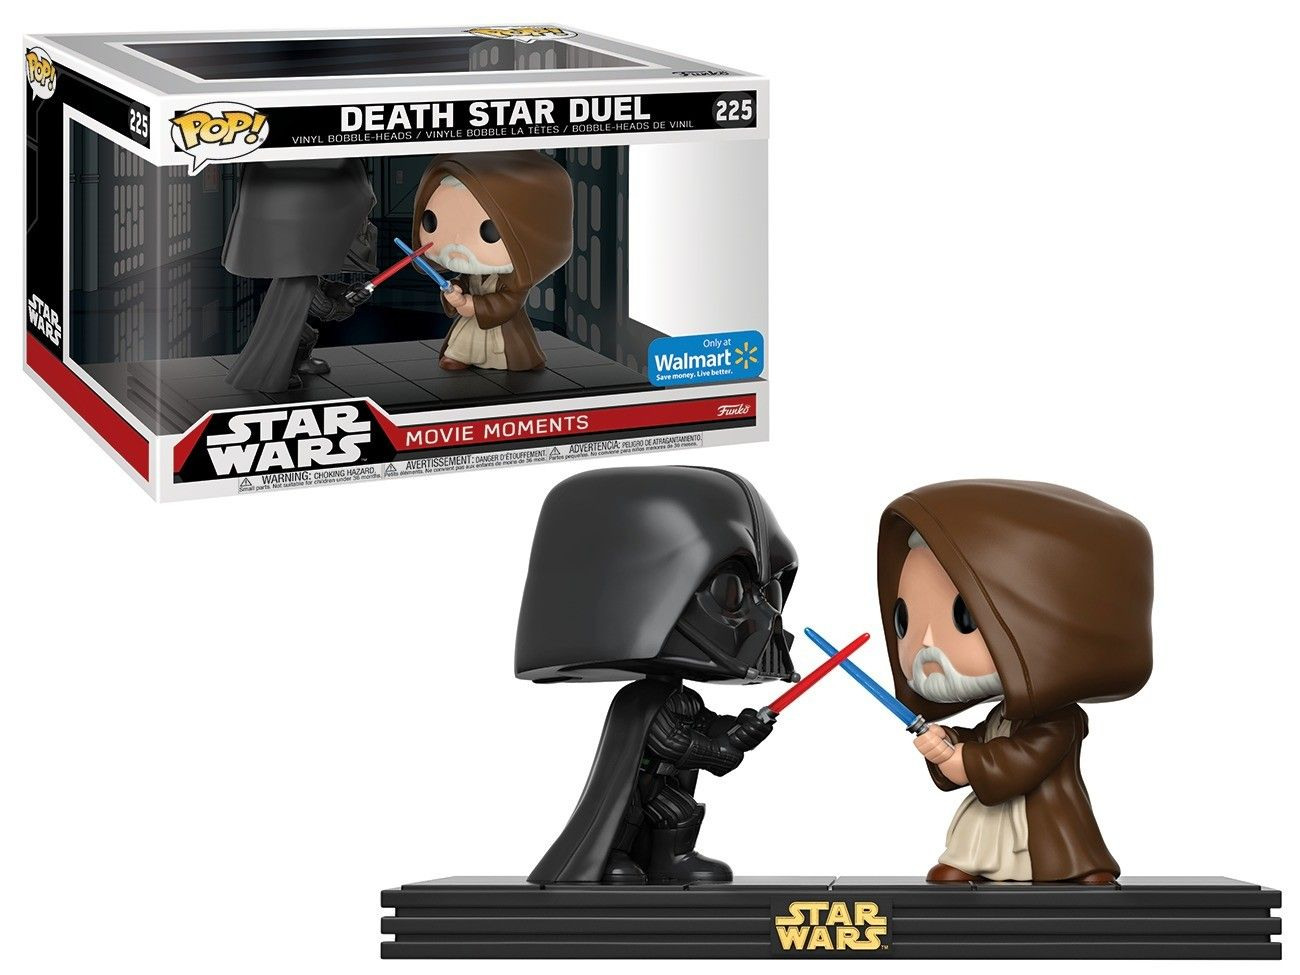 Pop! Death Star Duel: Star Wars (Movie Moments) Exclusivo #225 - Funko